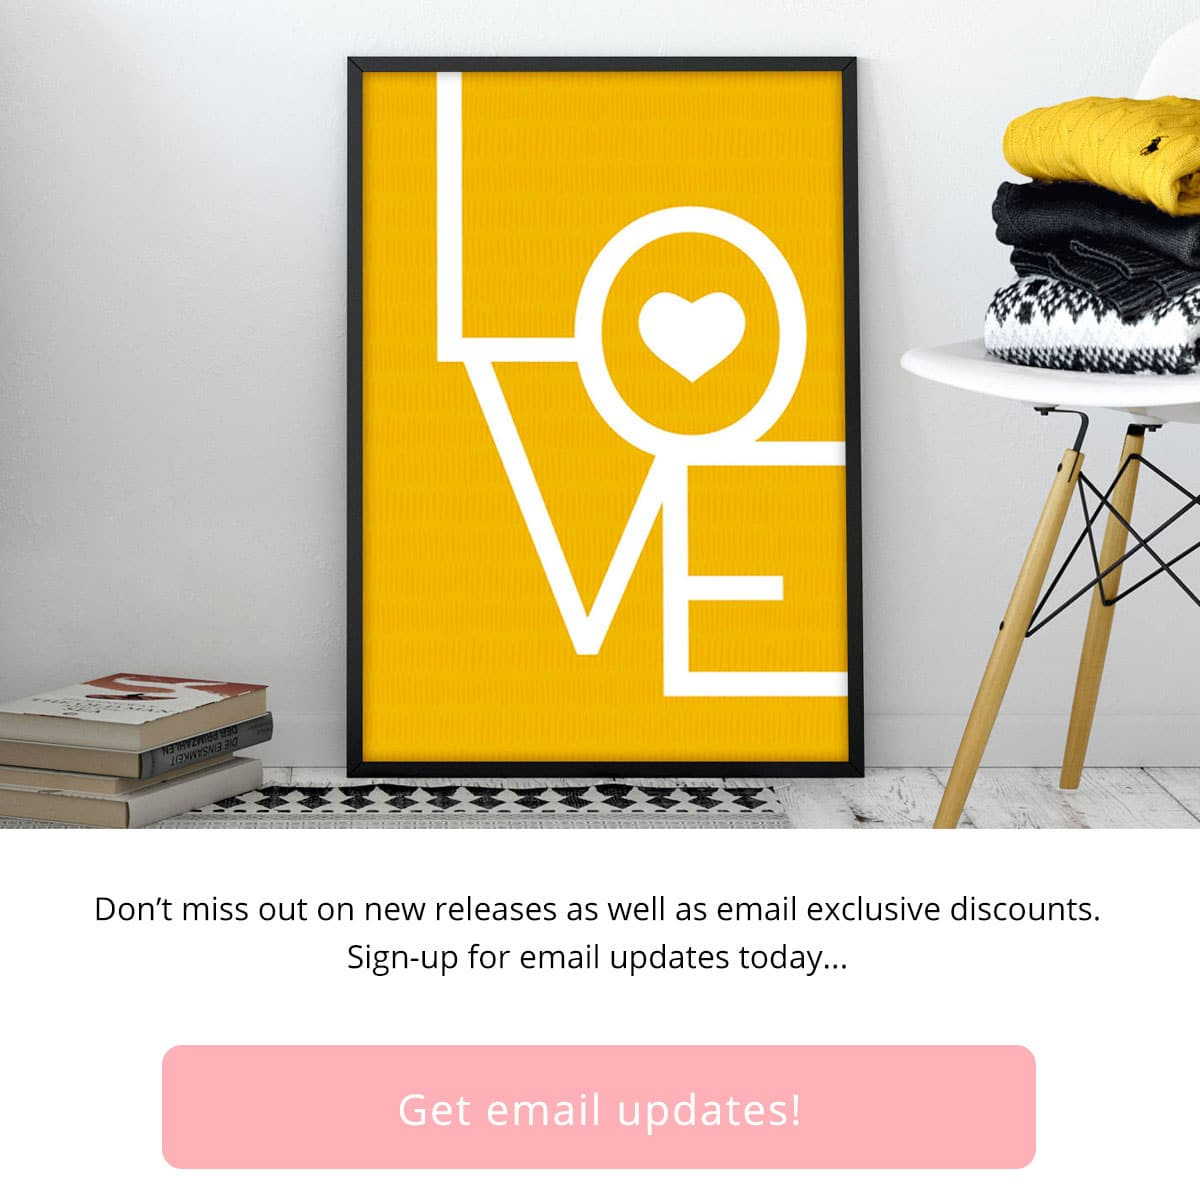 Don't miss out on new releases as well as email exclusive discounts. Sign-up for email updates today...